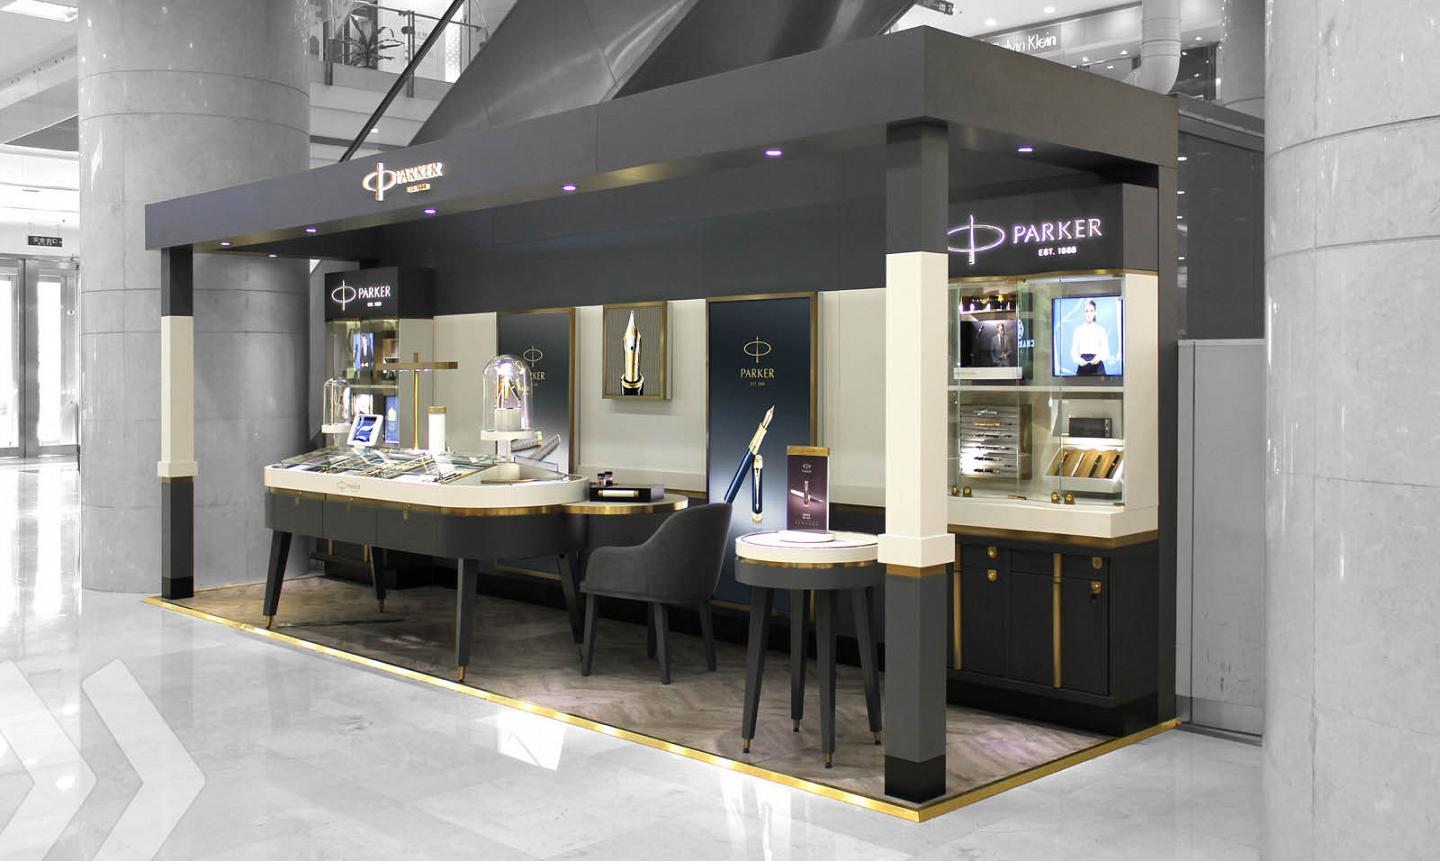 Parker Pen Shop in Shop 3